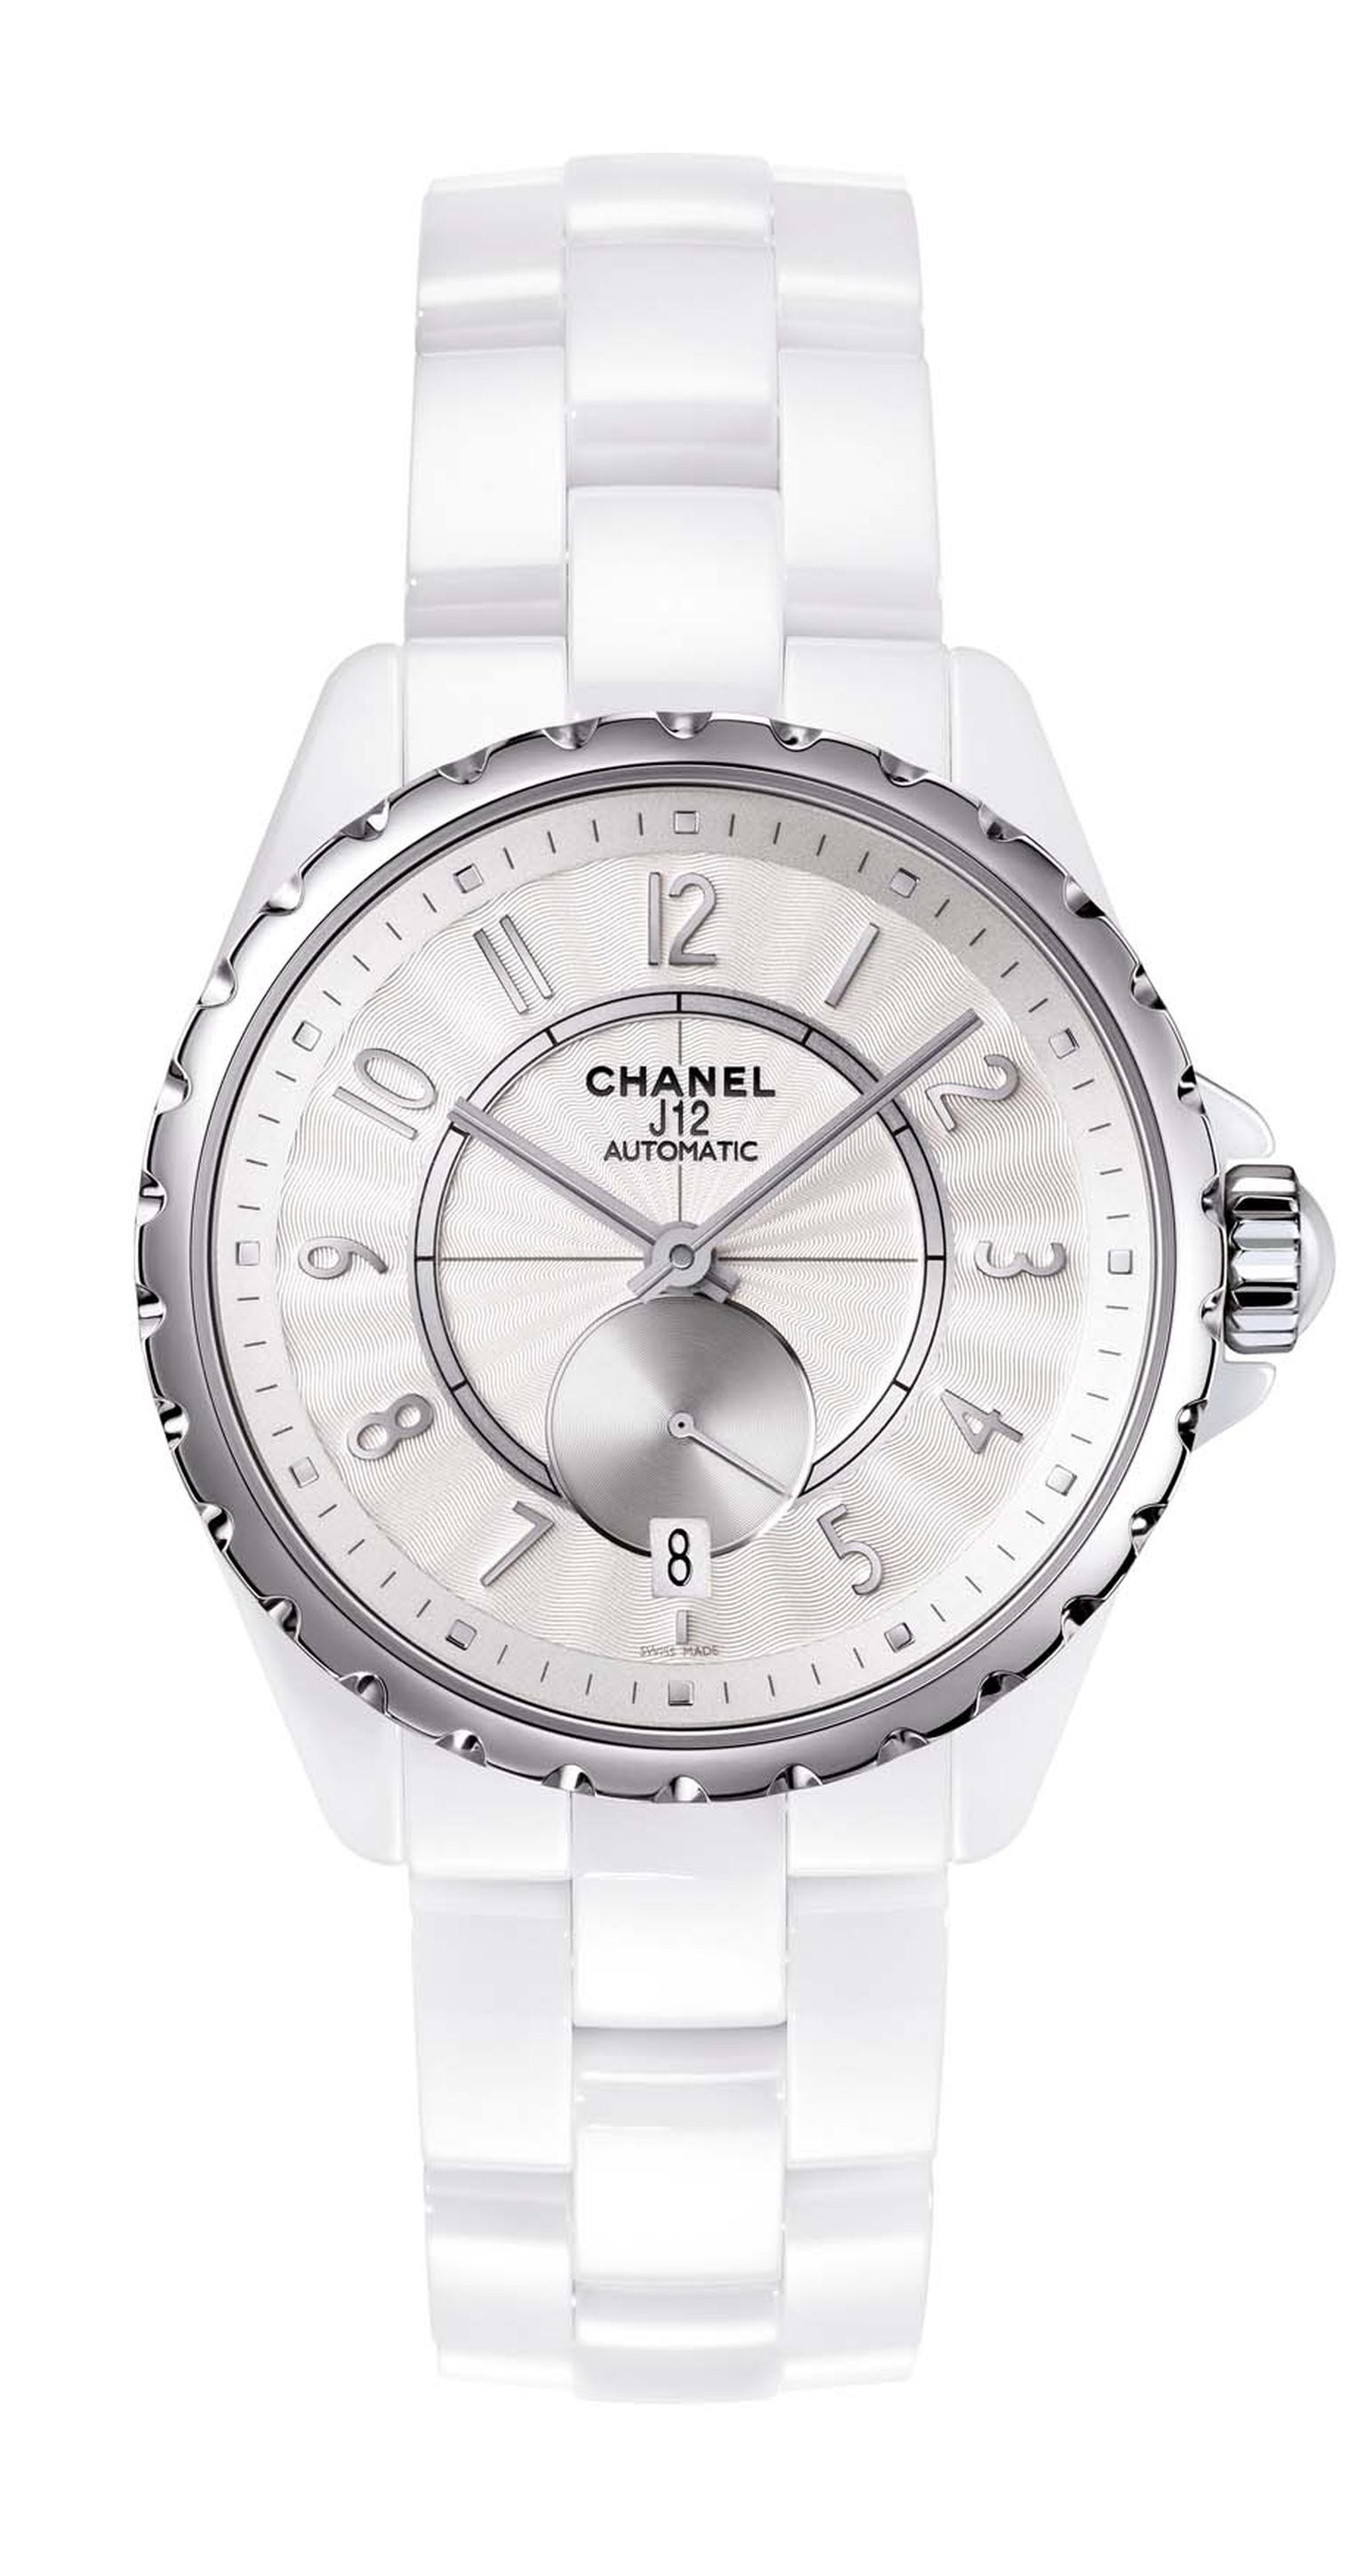 The new Chanel J12-365 watch in high-tech white ceramic is intended to be worn 365 days a year and features a smaller, more feminine 36.5mm case size (£3,750).